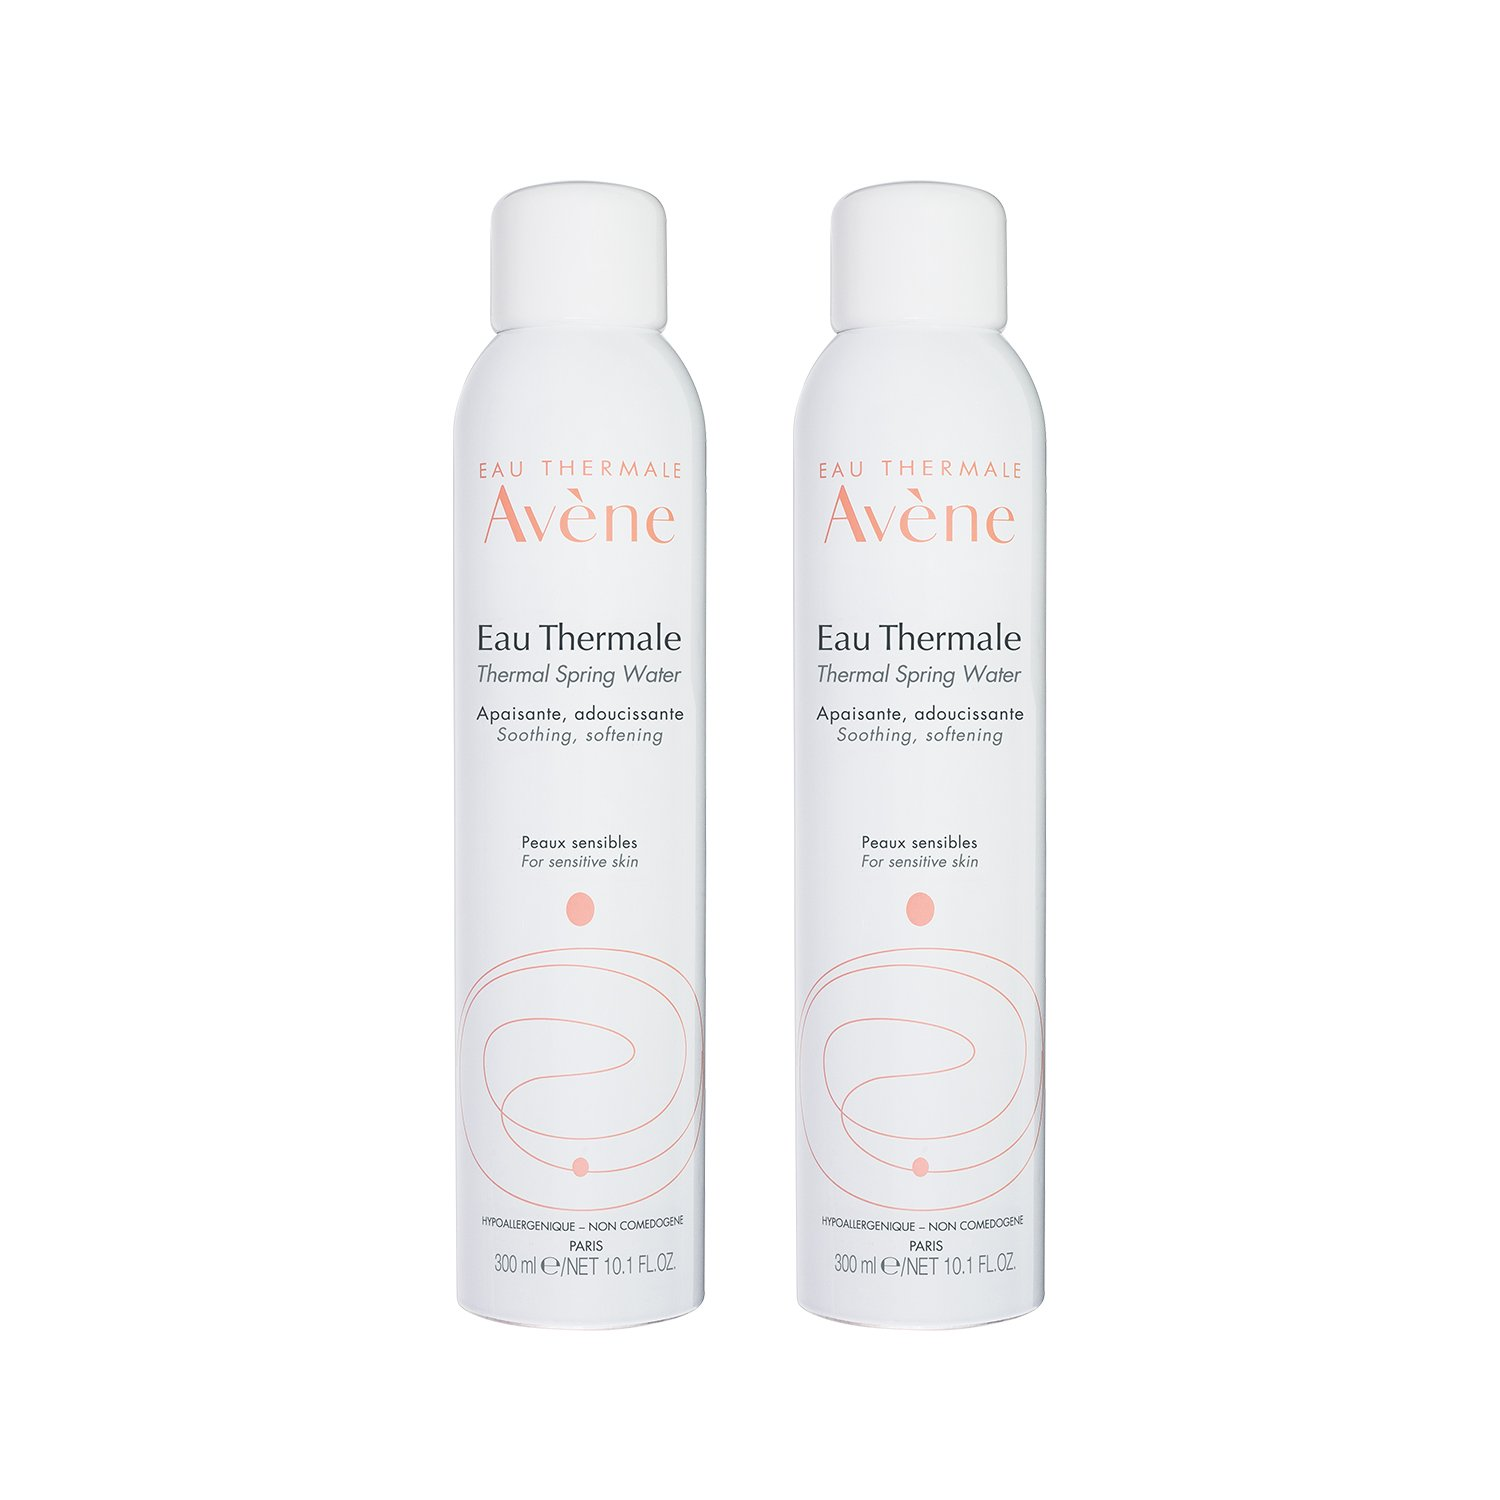 Thermal Spring Water Soothing Calming Facial Mist Spray Evian 300ml For Sensitive Skin Luxury Beauty